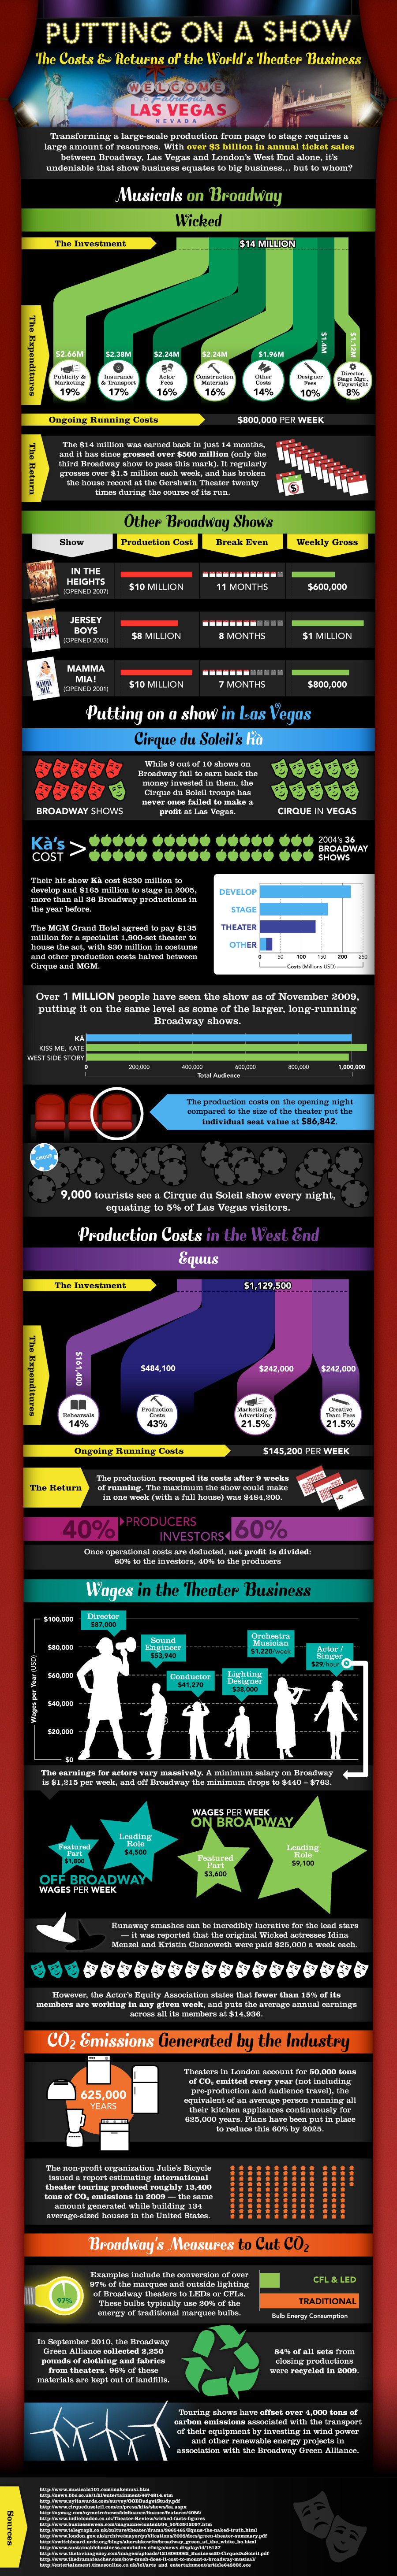 The Cost of a Musical on Broadway Infographic - An Infographic from Infographics Showcase